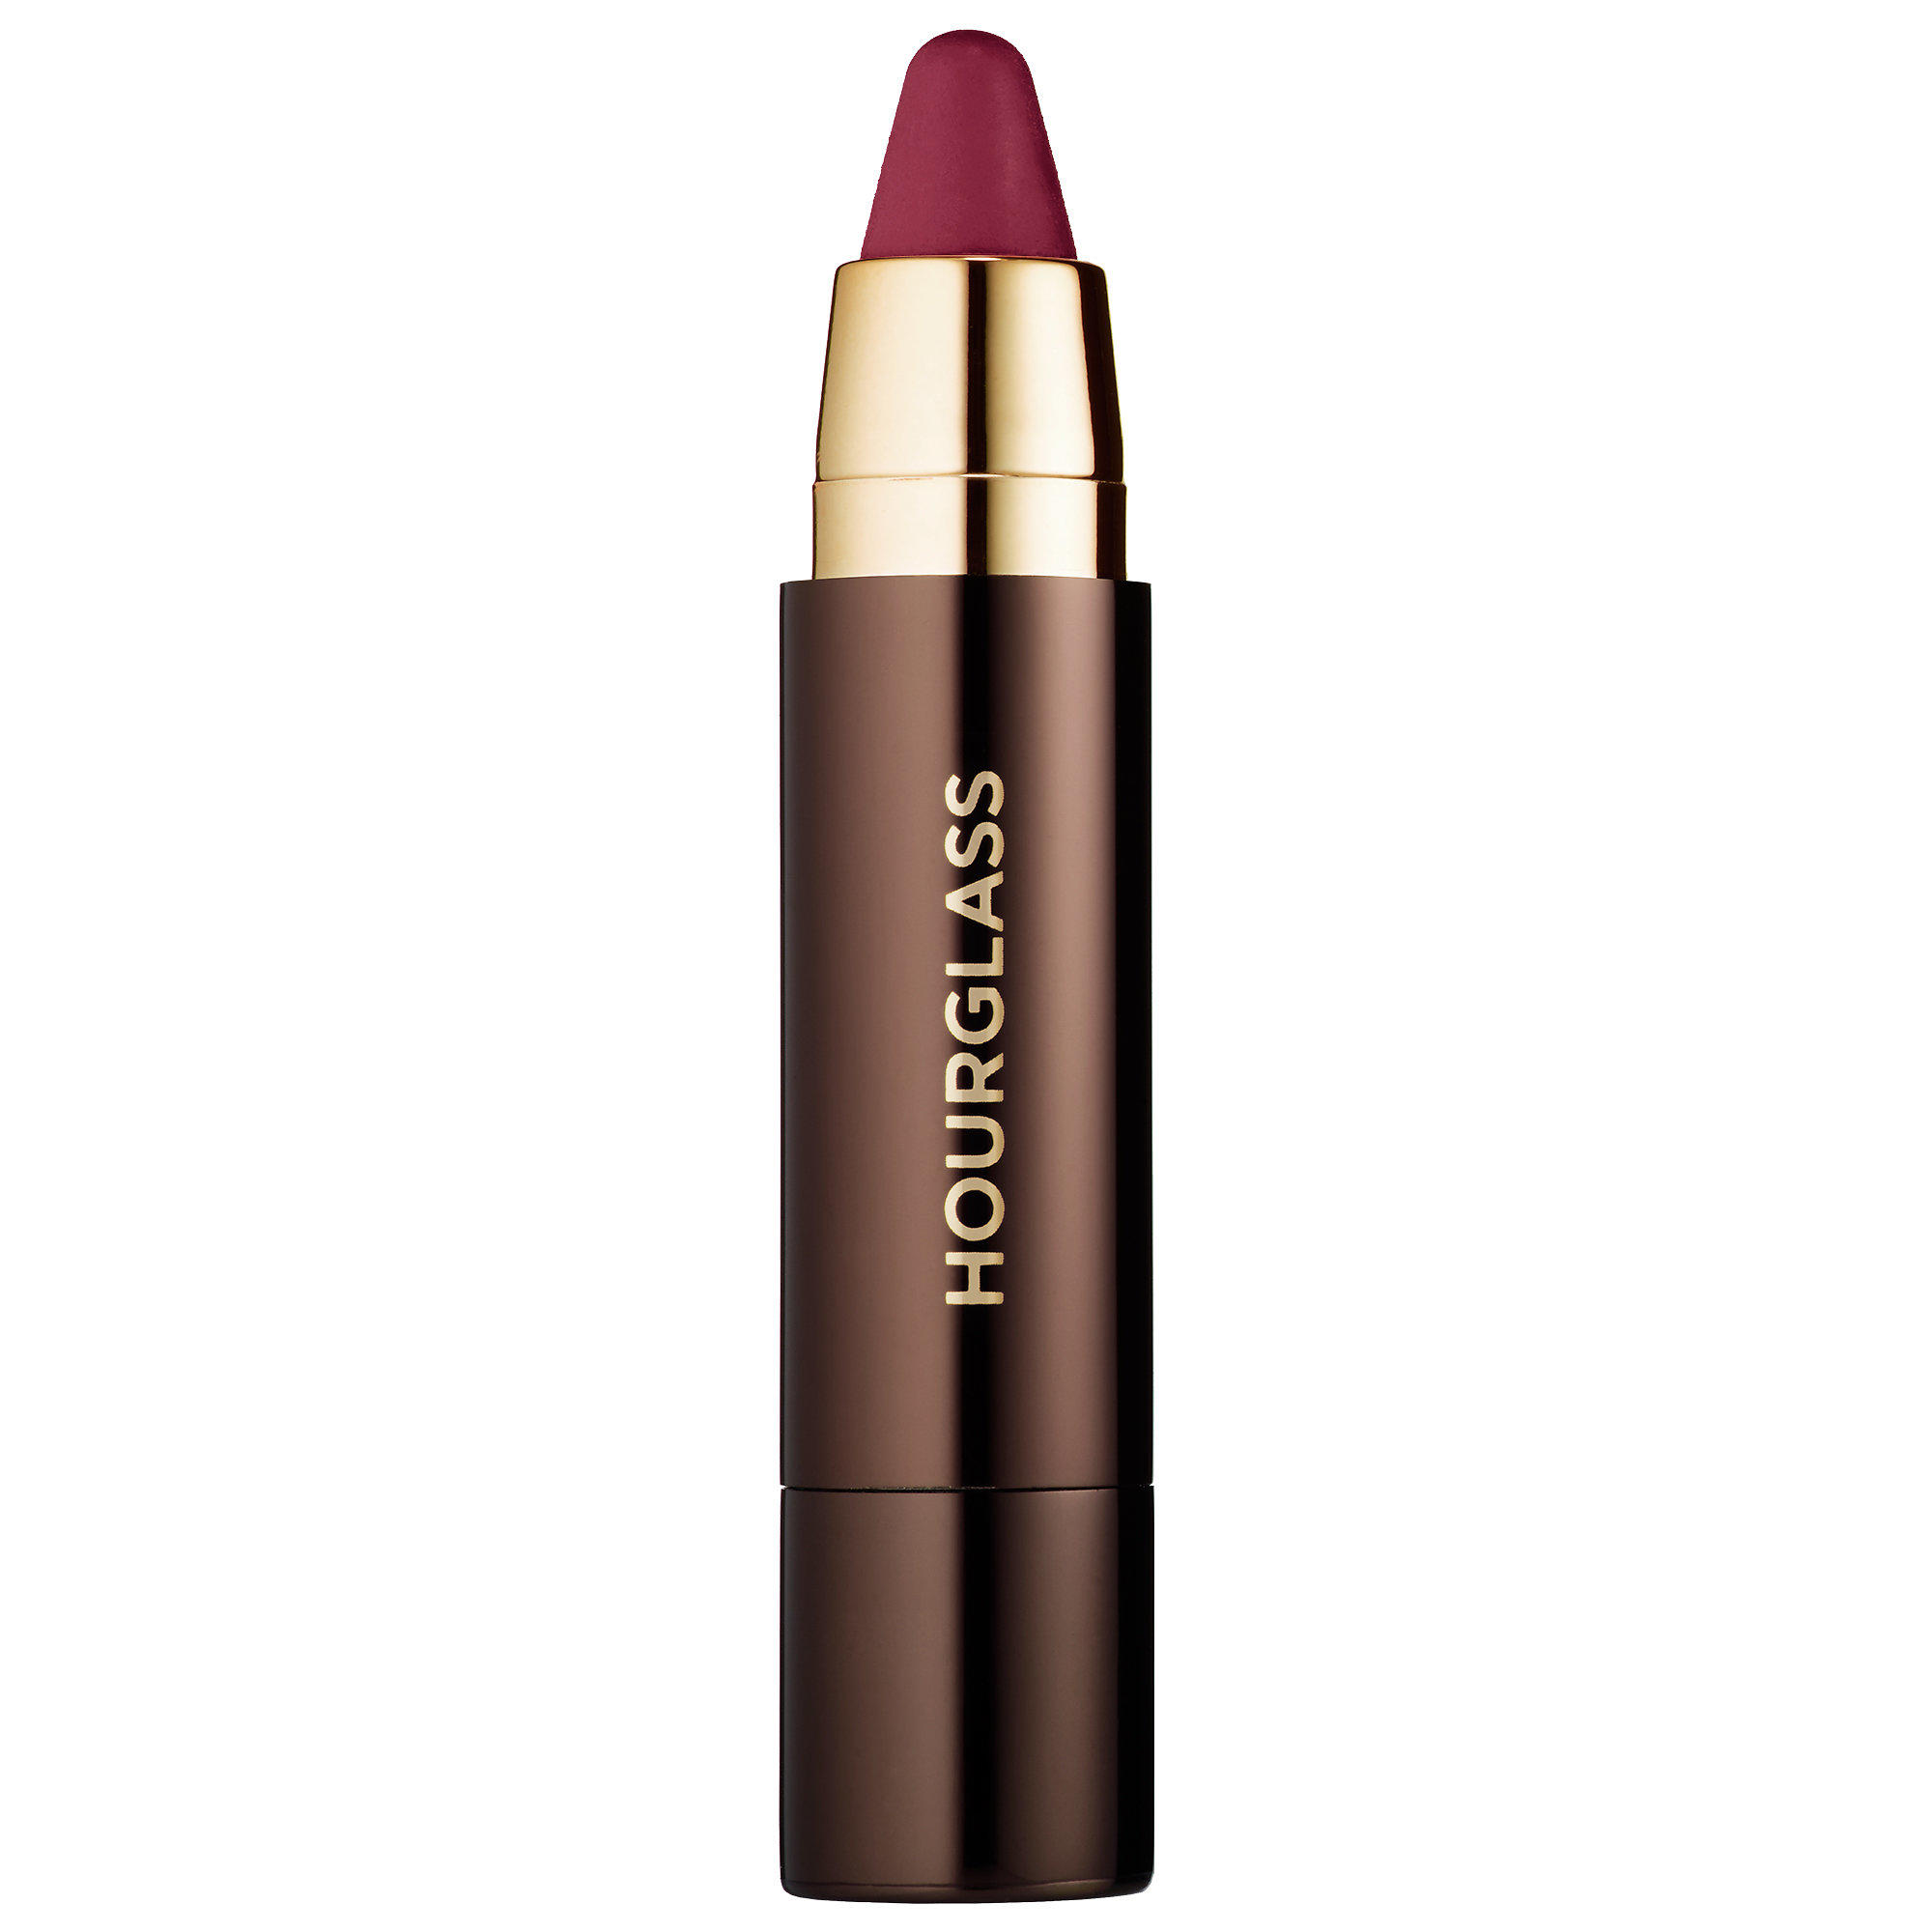 Hourglass Girl Lip Stylo Warrior